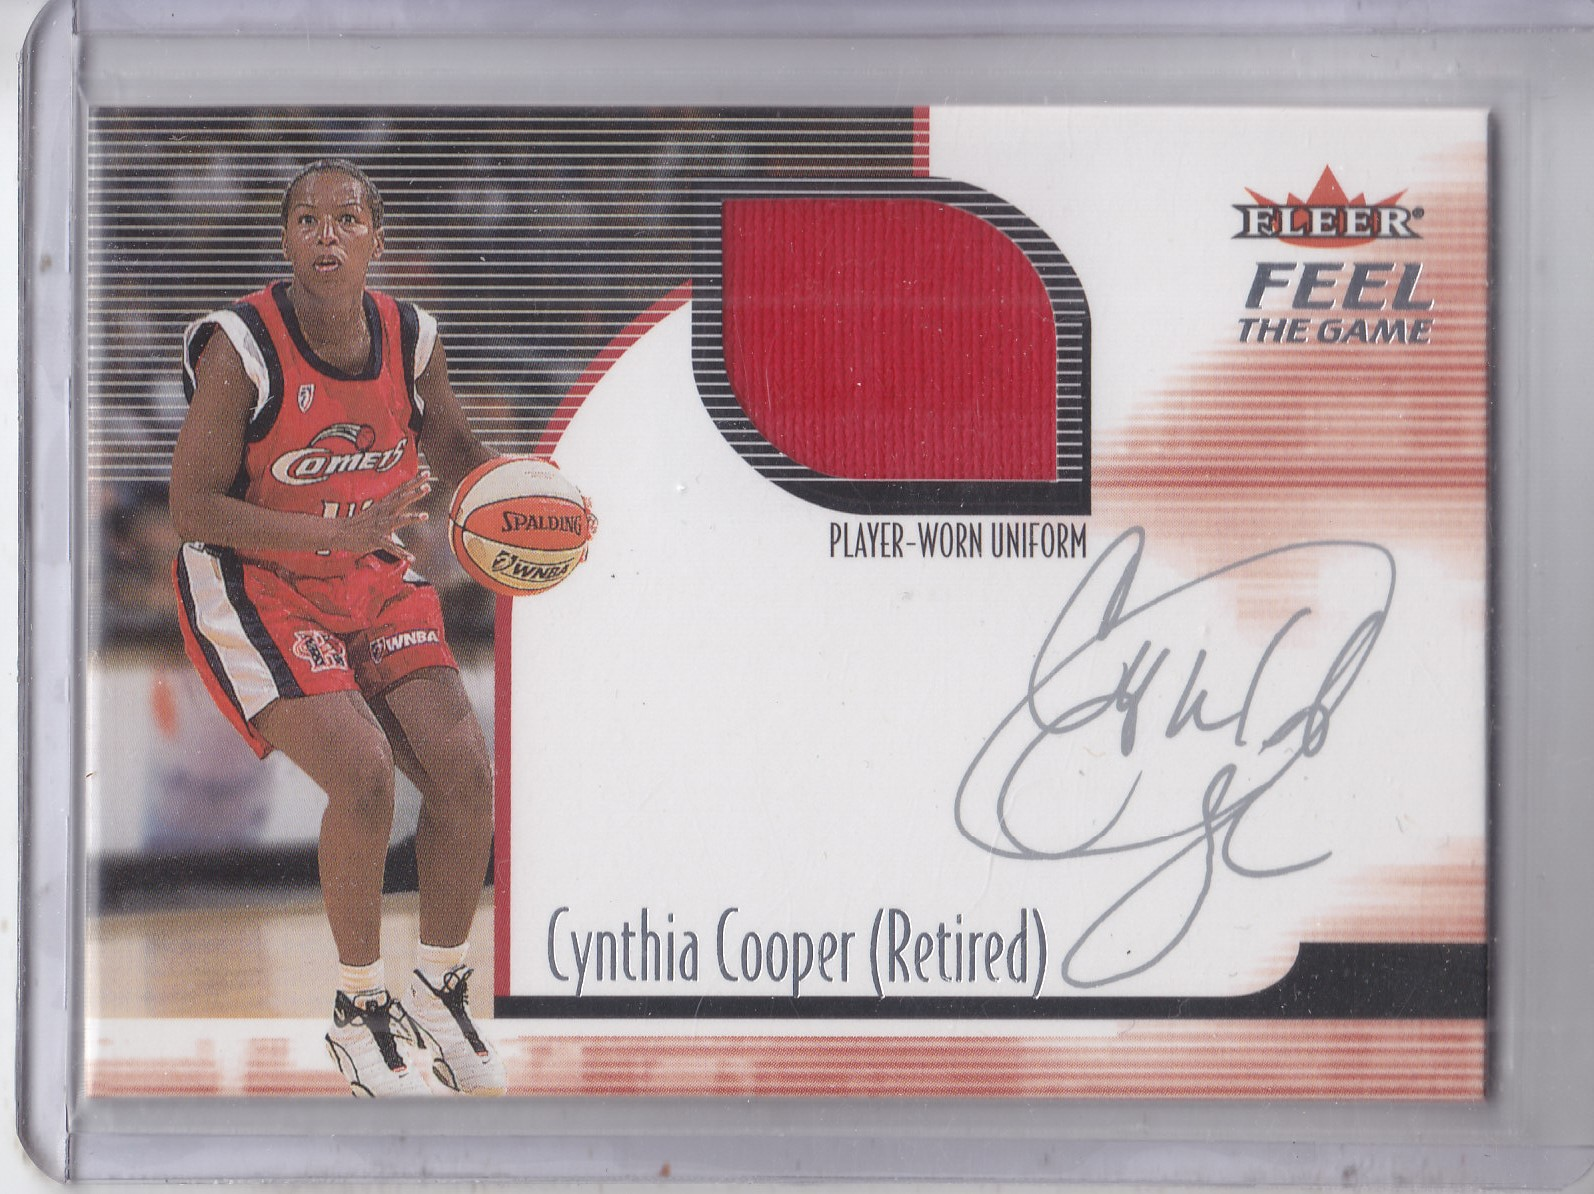 2001 Ultra WNBA Feel the Game #2 Cynthia Cooper